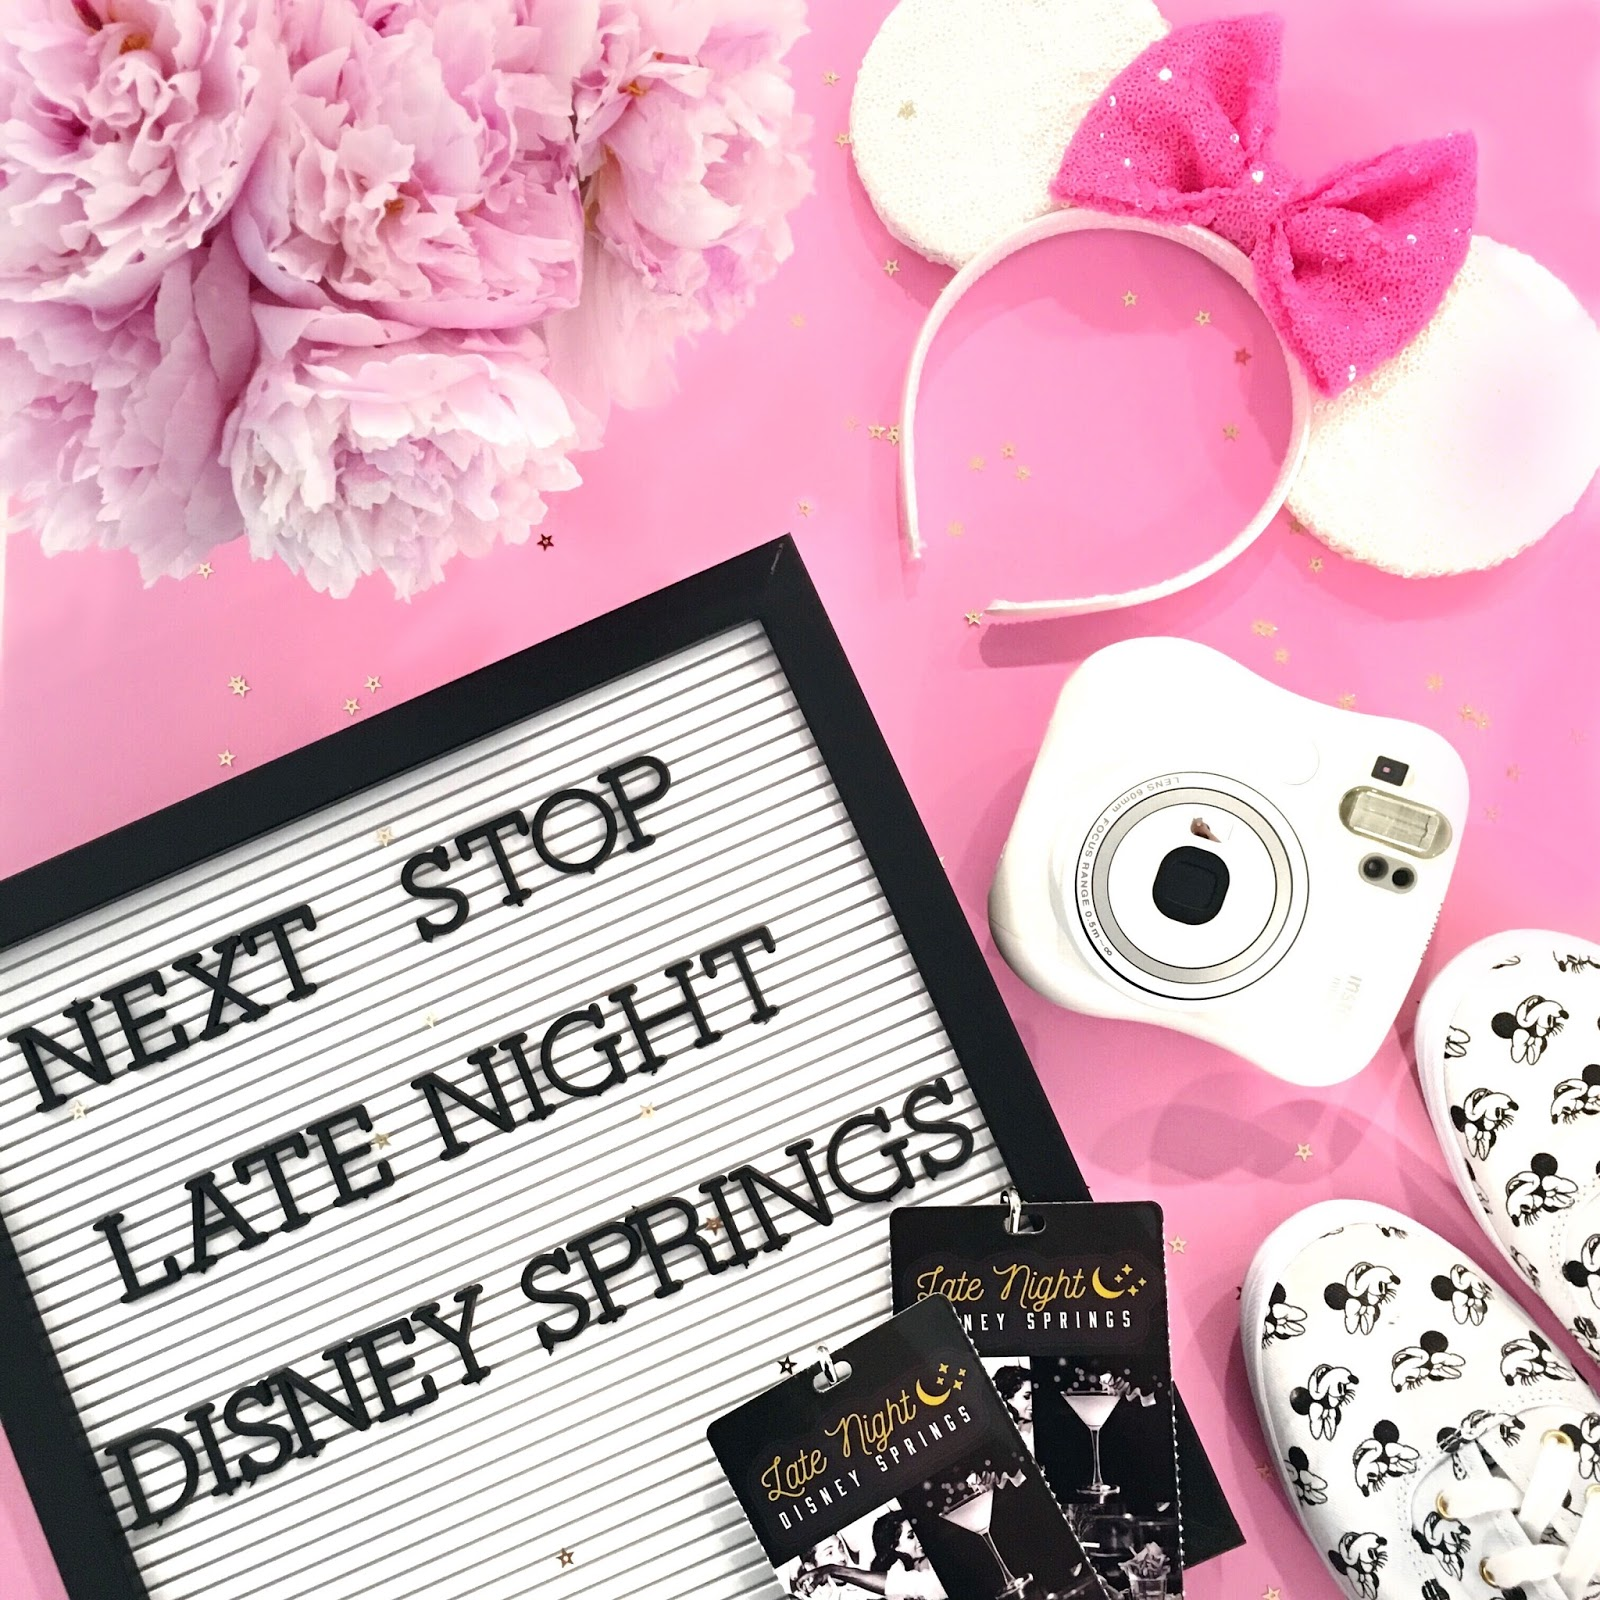 Late Night Disney Springs by popular Florida blogger The Celebration Stylist